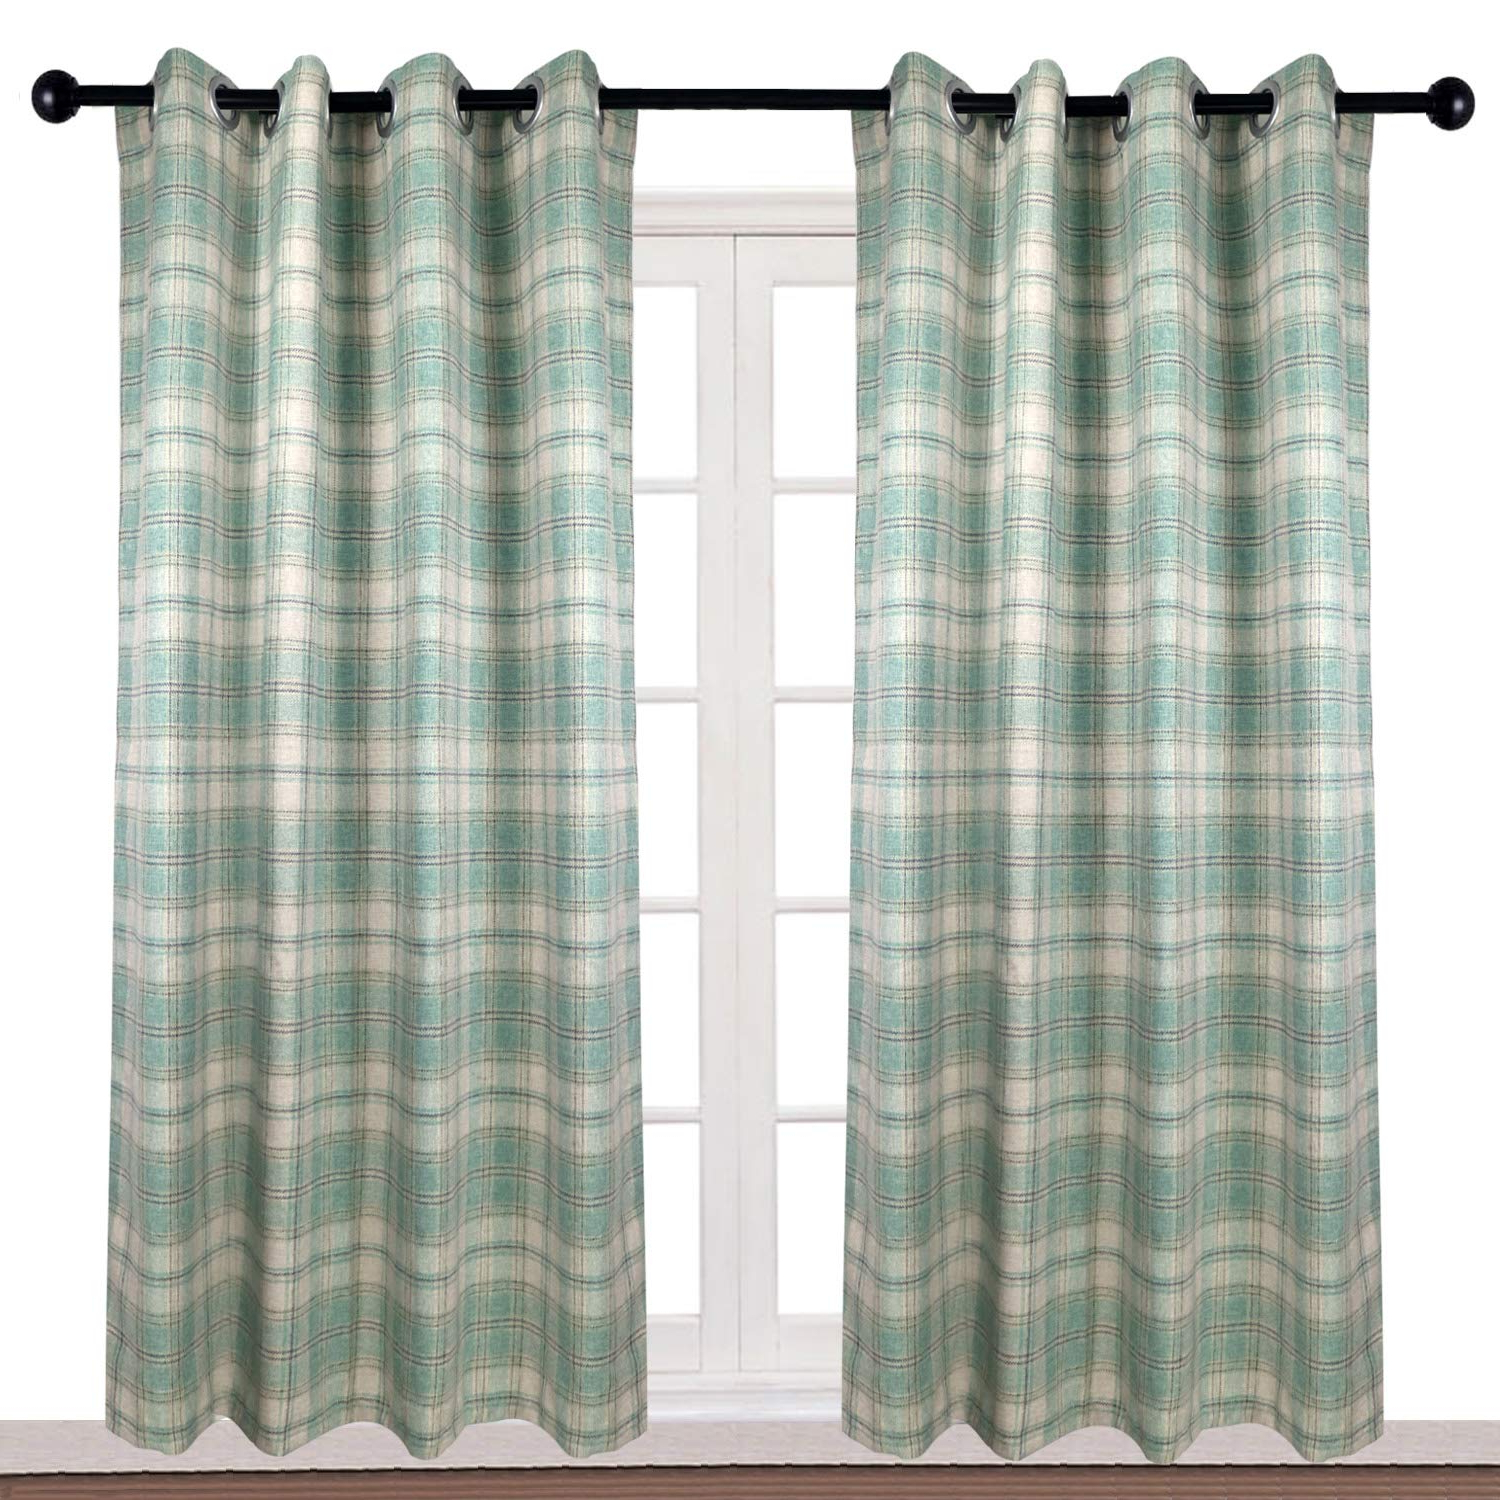 Primebeau Geometric Pattern Blackout Curtain Pairs Throughout Widely Used Kalends Thermal Insulated British Style Plaid Grommet (View 12 of 20)